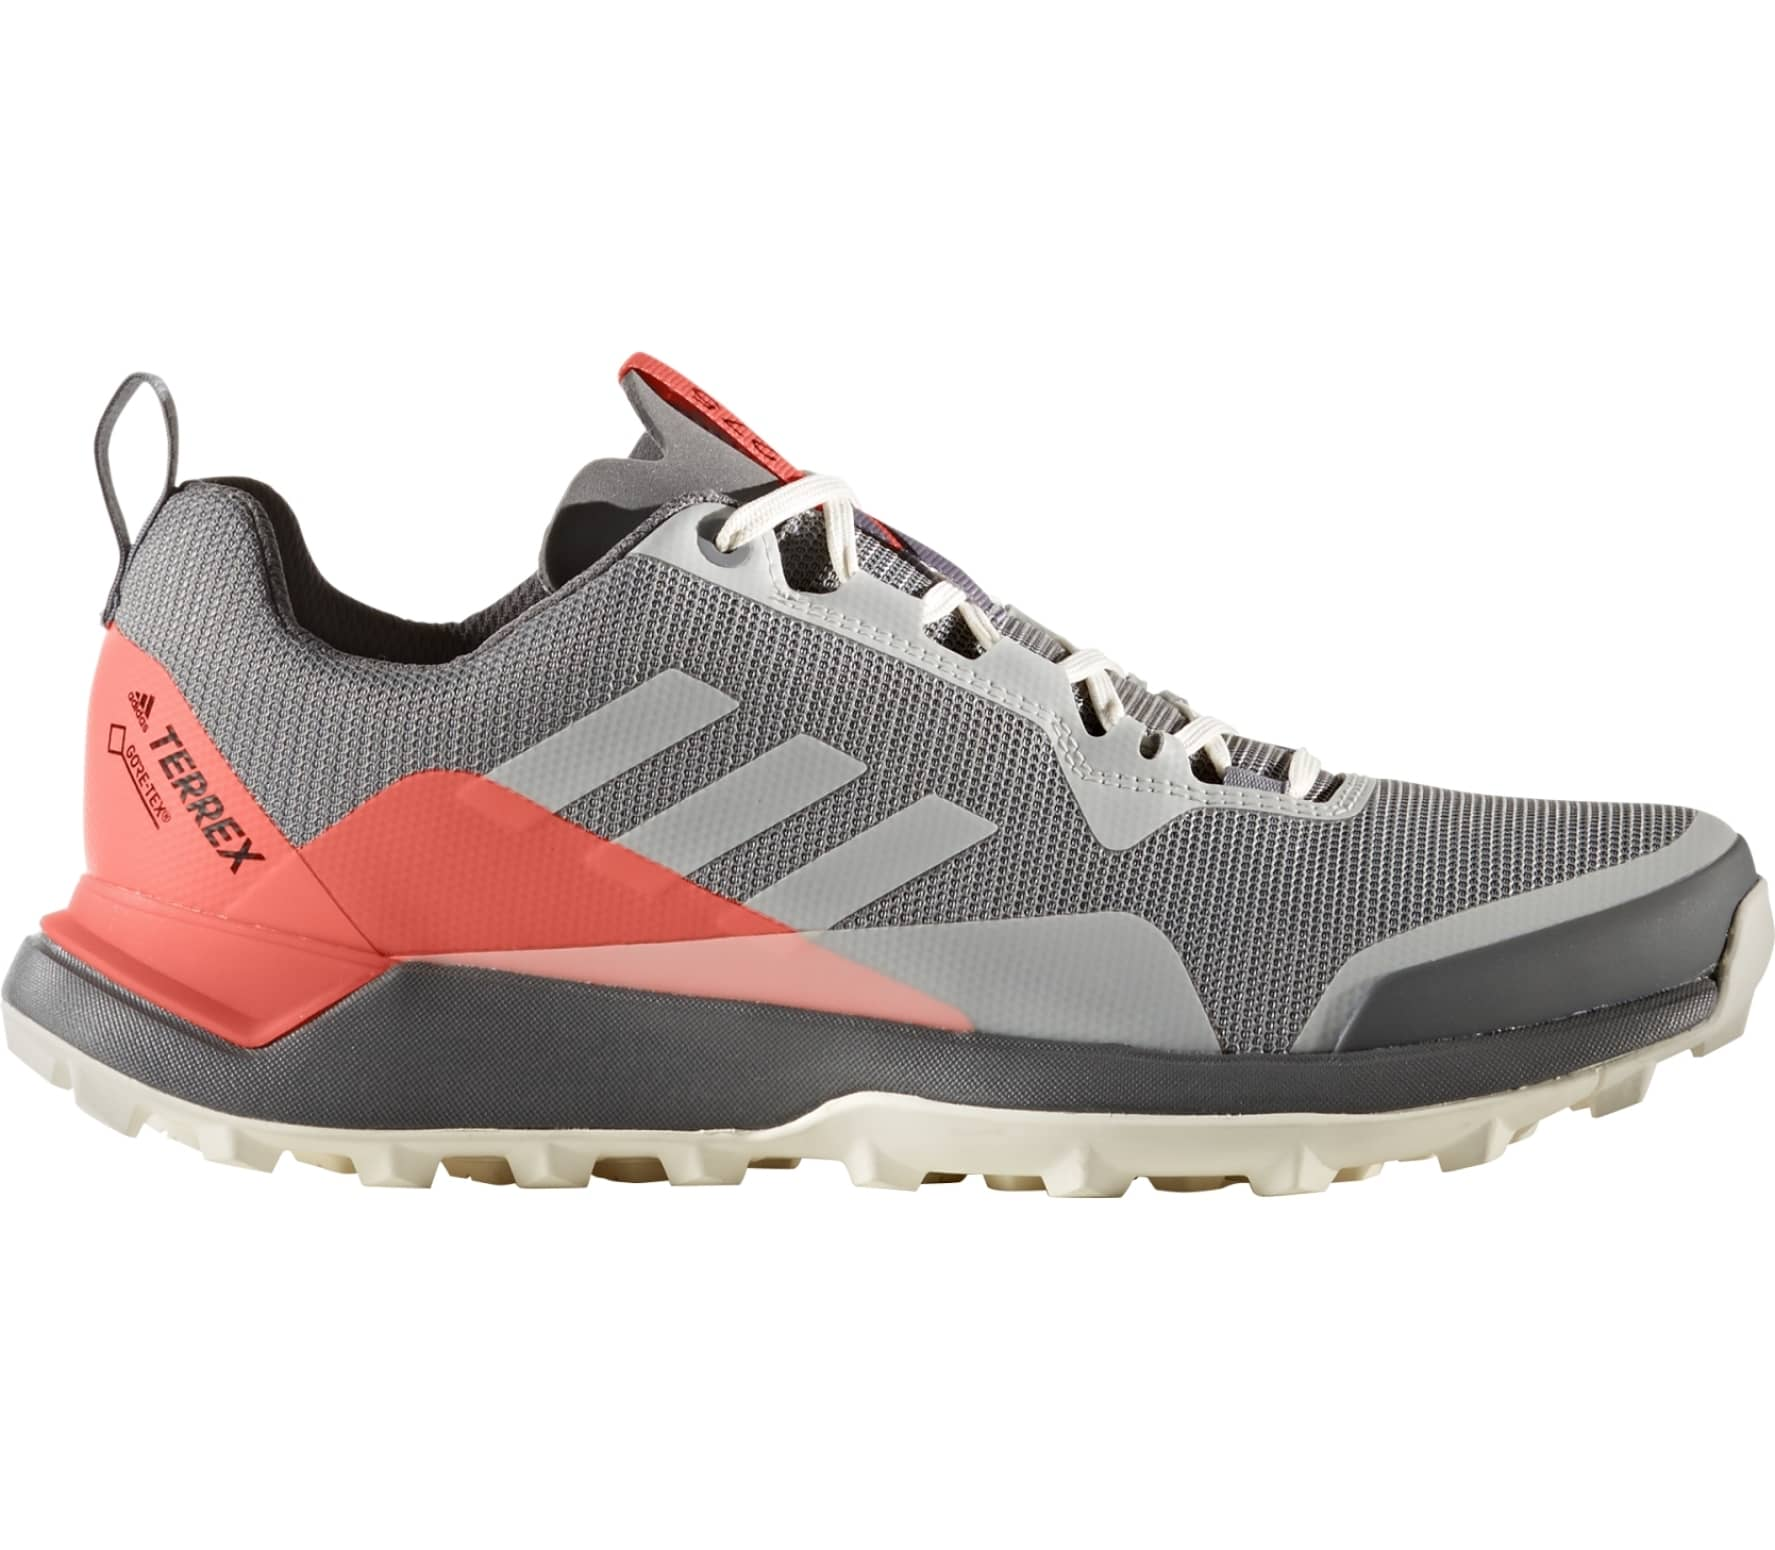 low priced 9e9eb 44003 Adidas - Terrex CMTK GTX women s trail running shoes (grey red)